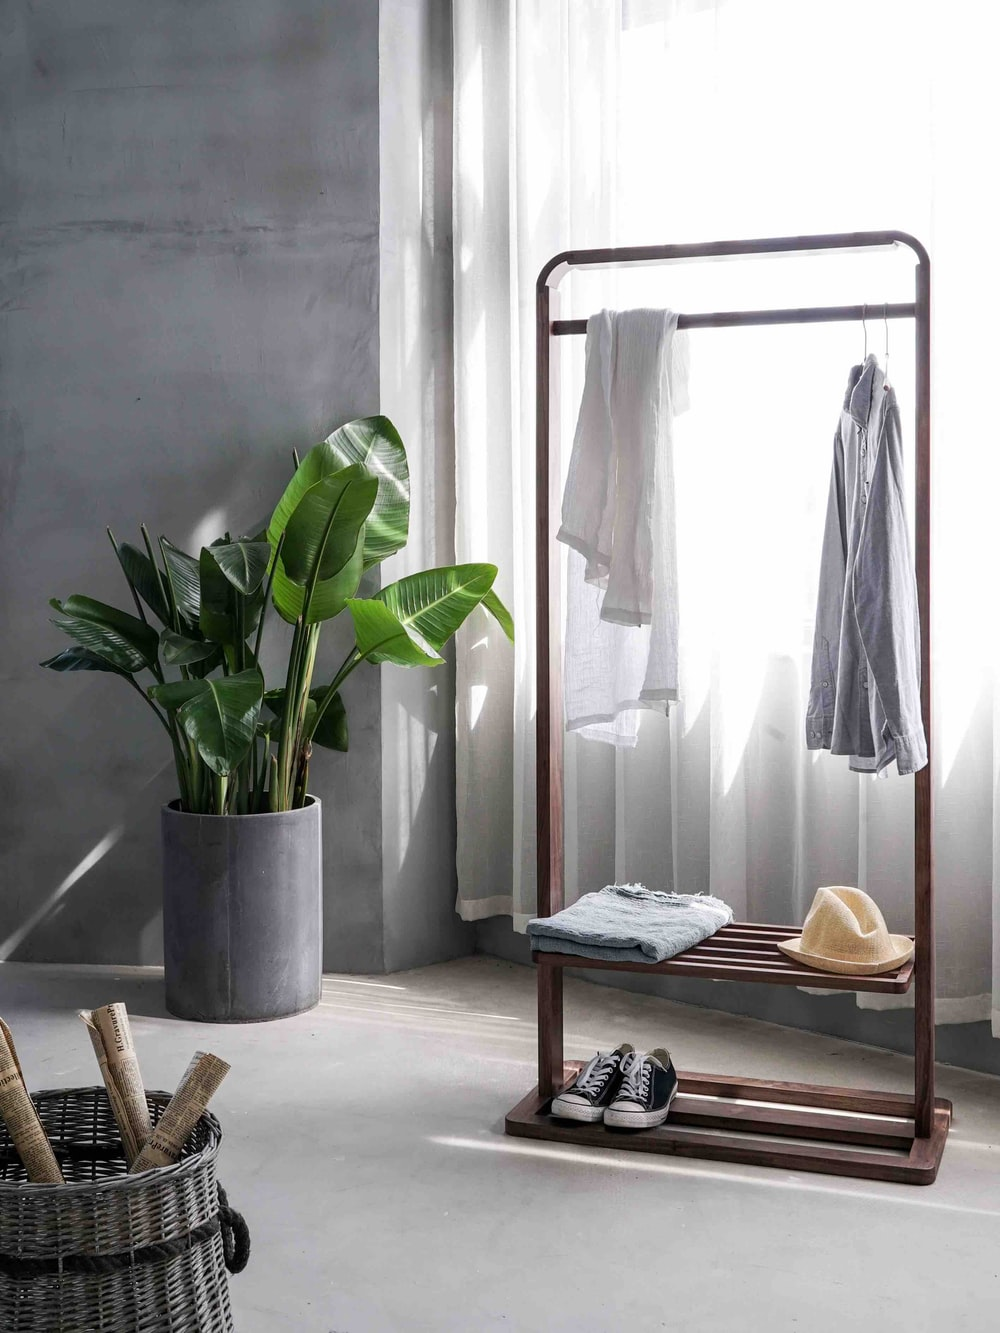 台北團體服製作  gray dress shirt hang on brown wooden rack in front of window with white curtain